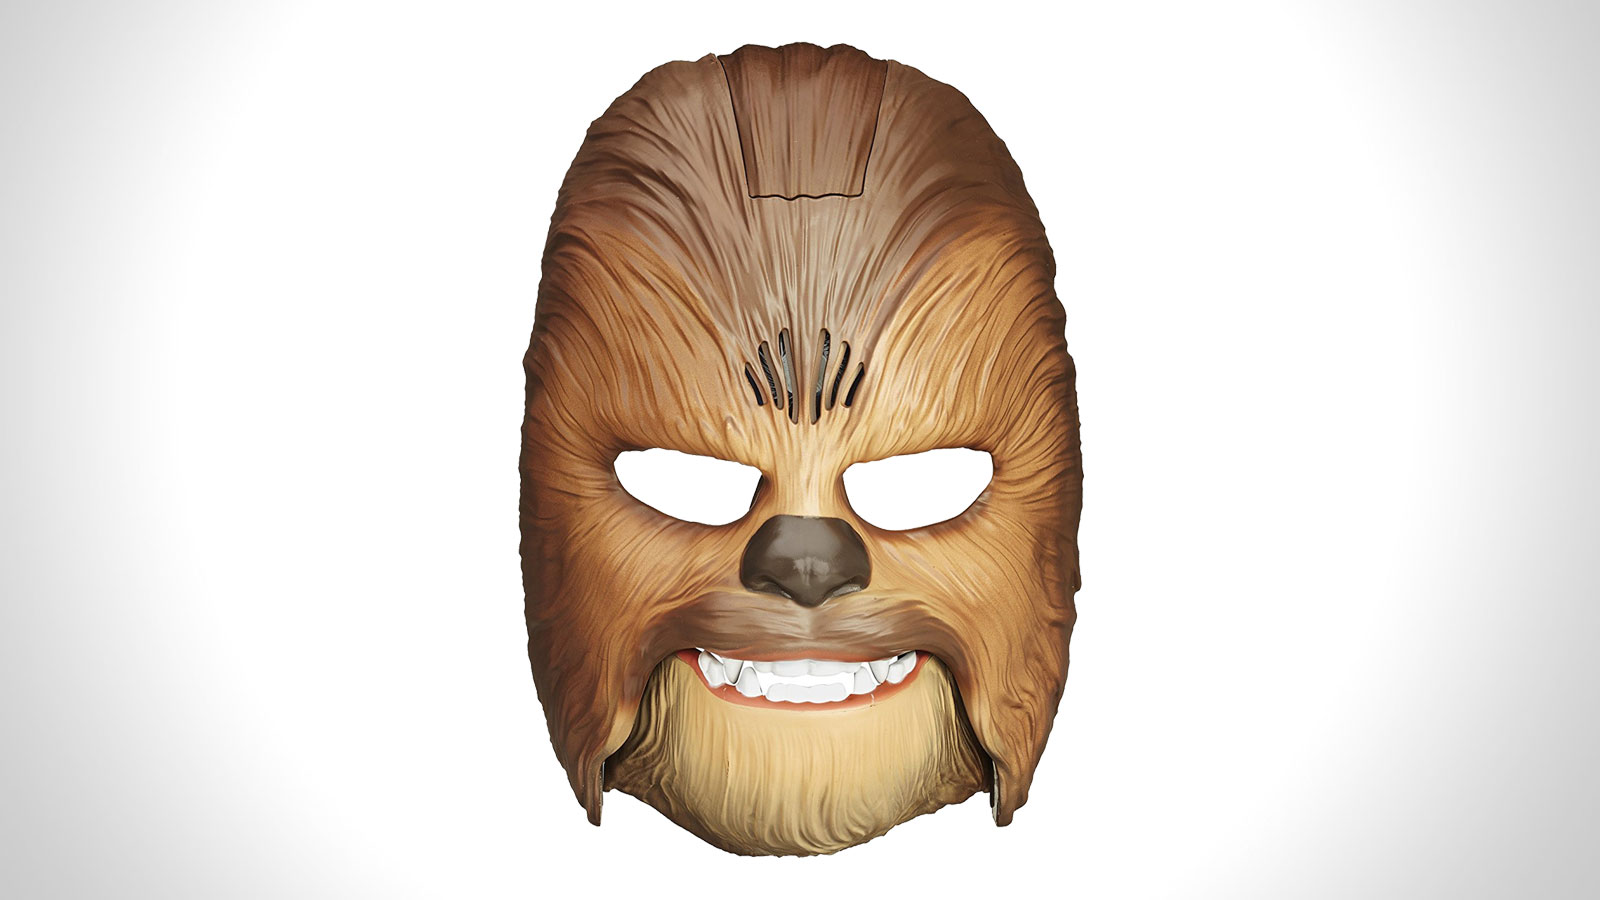 Star Wars The Force Awakens Chewbacca Electronic Mask   gifts for men   the best star wars gifts